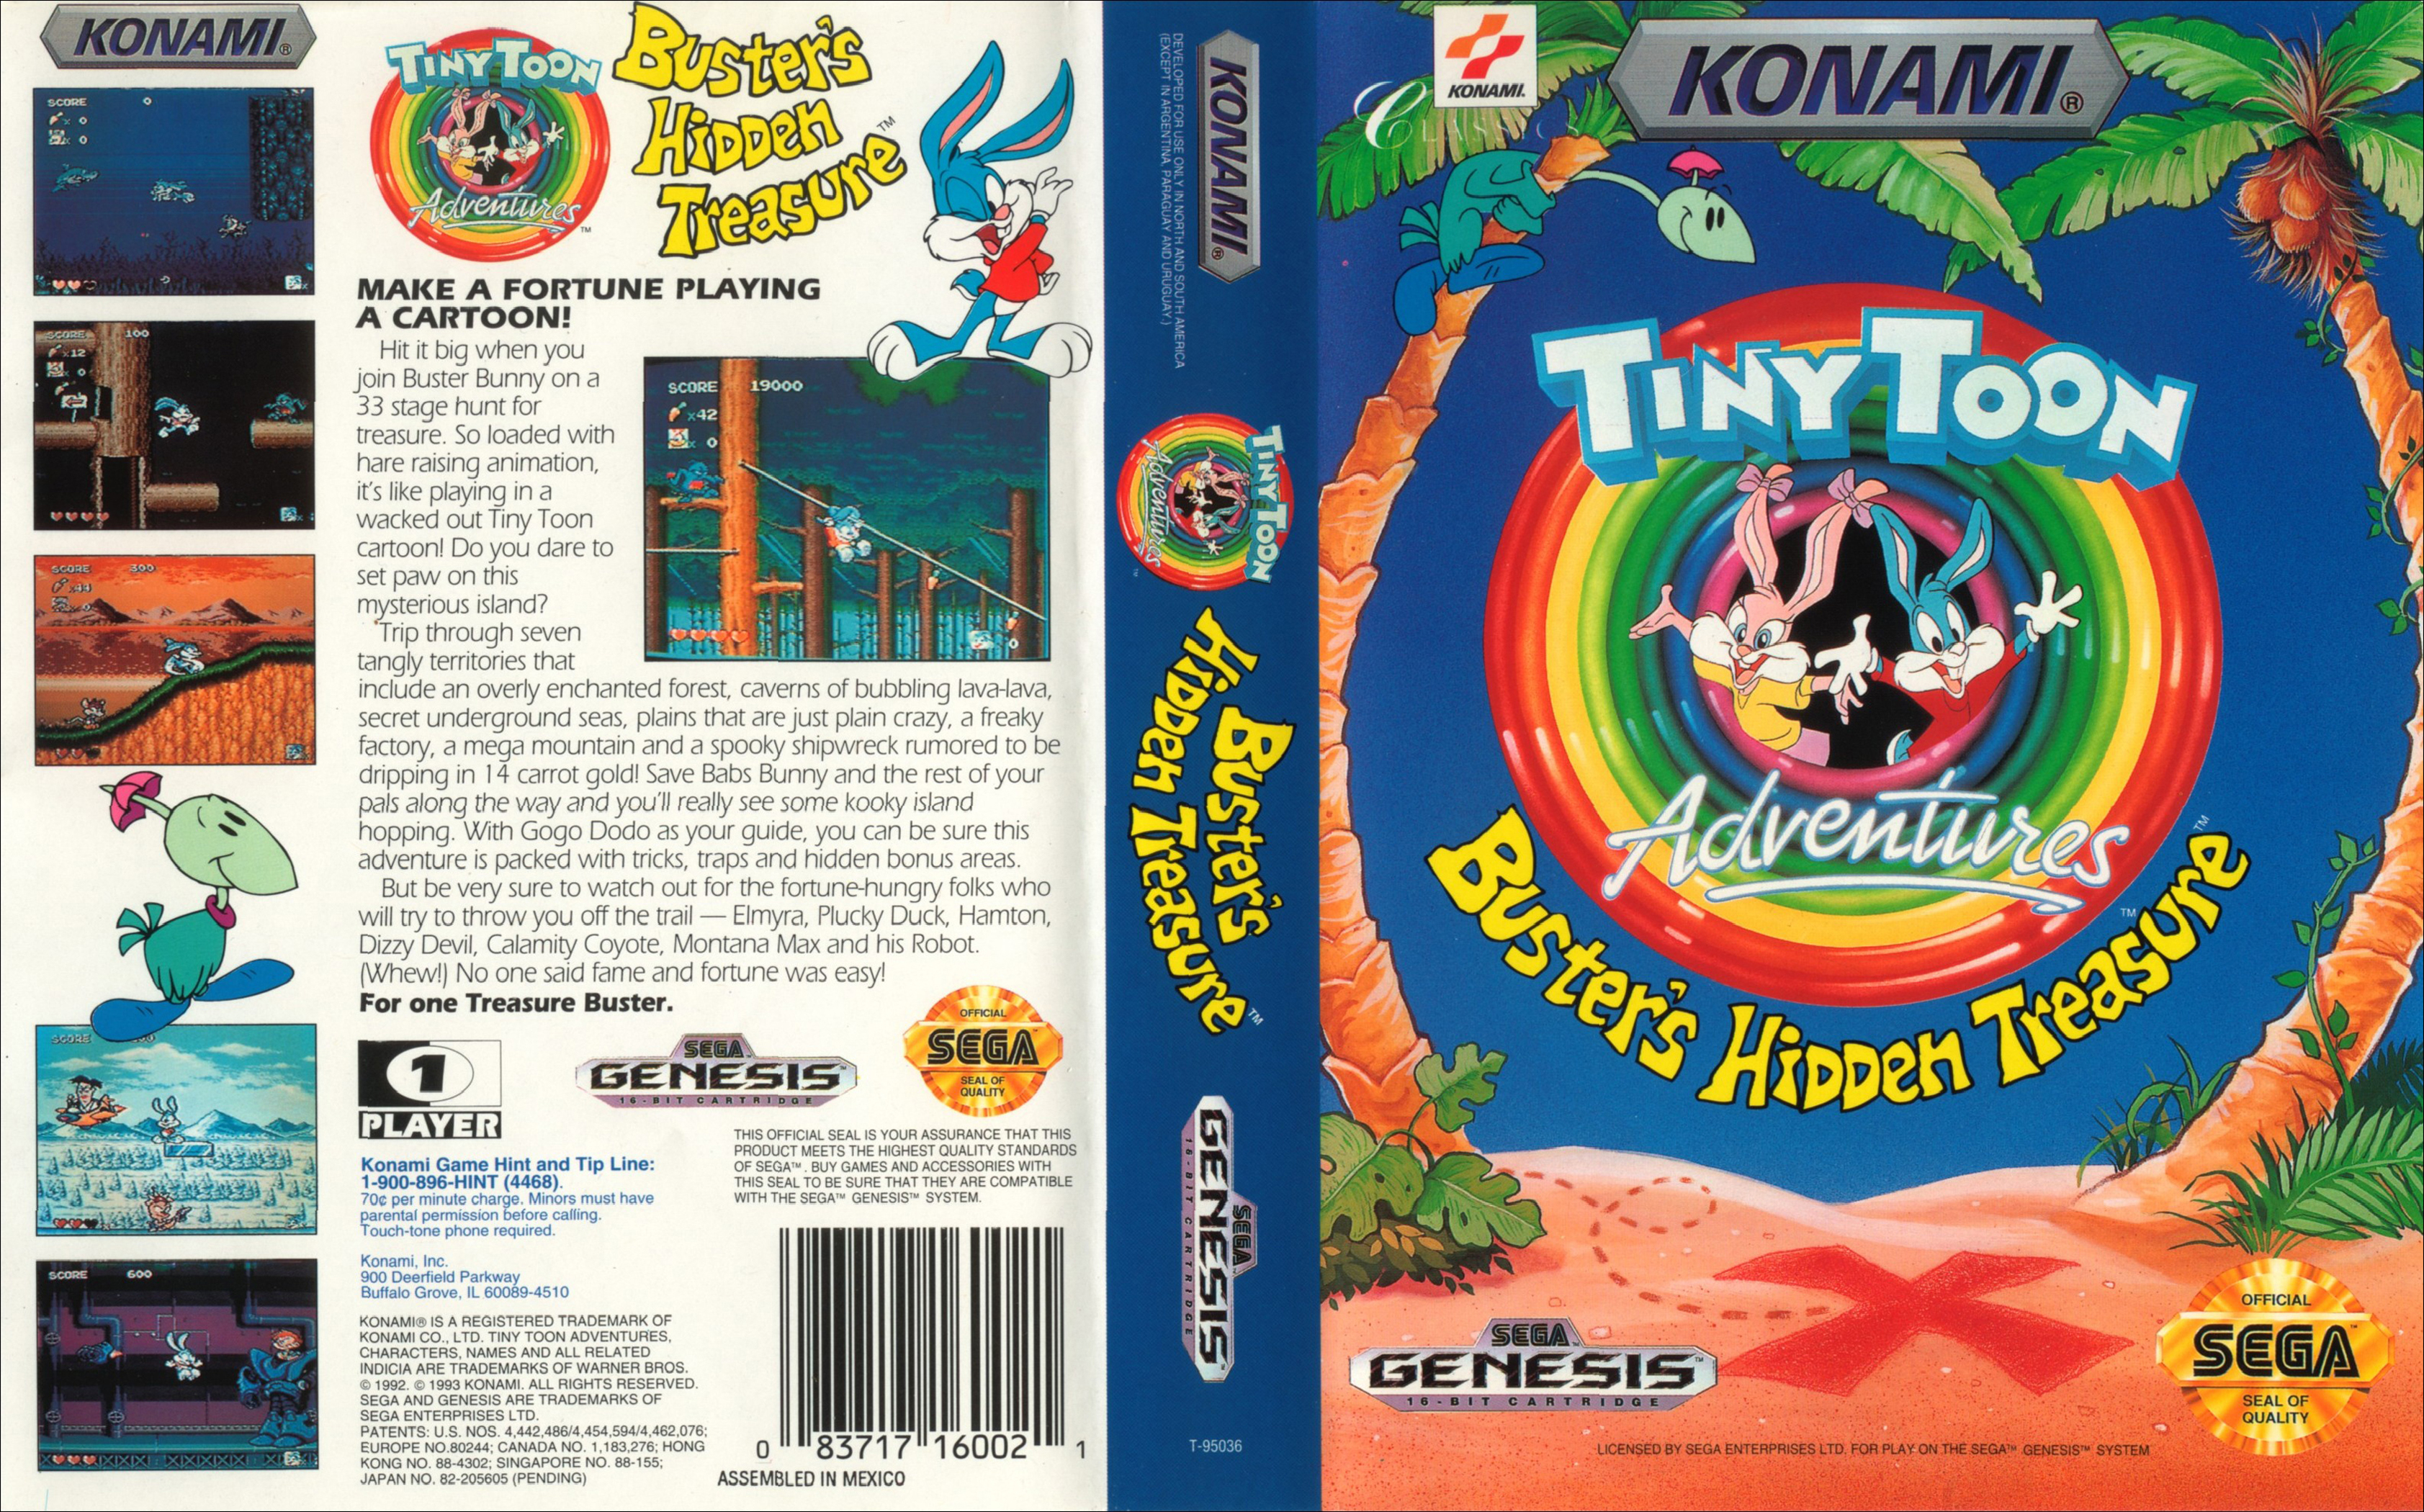 [Análise Retro Game] - TinyToons Adventures Buster's Hidden Treasure - Mega Drive/Genesis Tiny%20Toon%20Adventures%20-%20Buster%27s%20Hidden%20Treasure